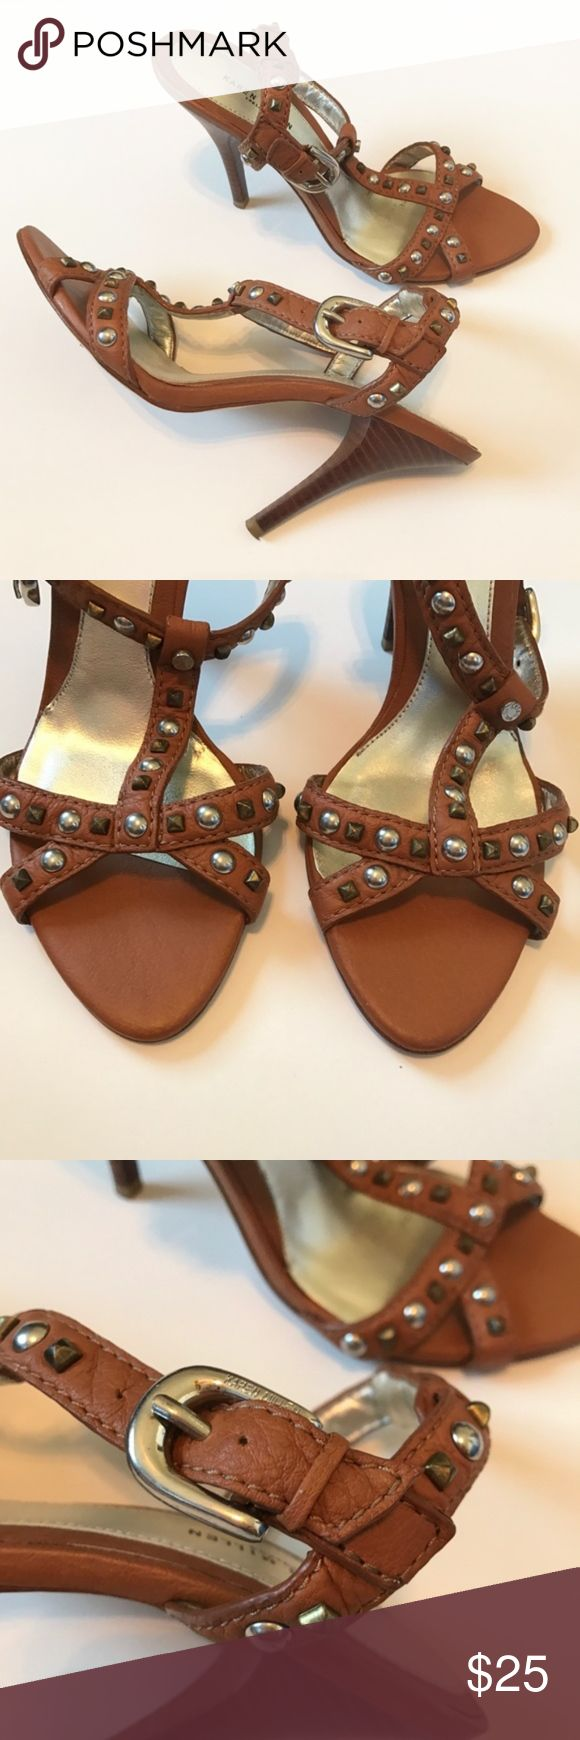 """KAREN MILLEN Tan Heeled Studded Sandal Size 40 9US Good condition Karen Miller brown/tan heeled sandal with silver-tone hardware buckle and studded accents.   Size 40 - equivalent to size 9.   Heel height is 4 1/2"""". Karen Millen Shoes Sandals"""